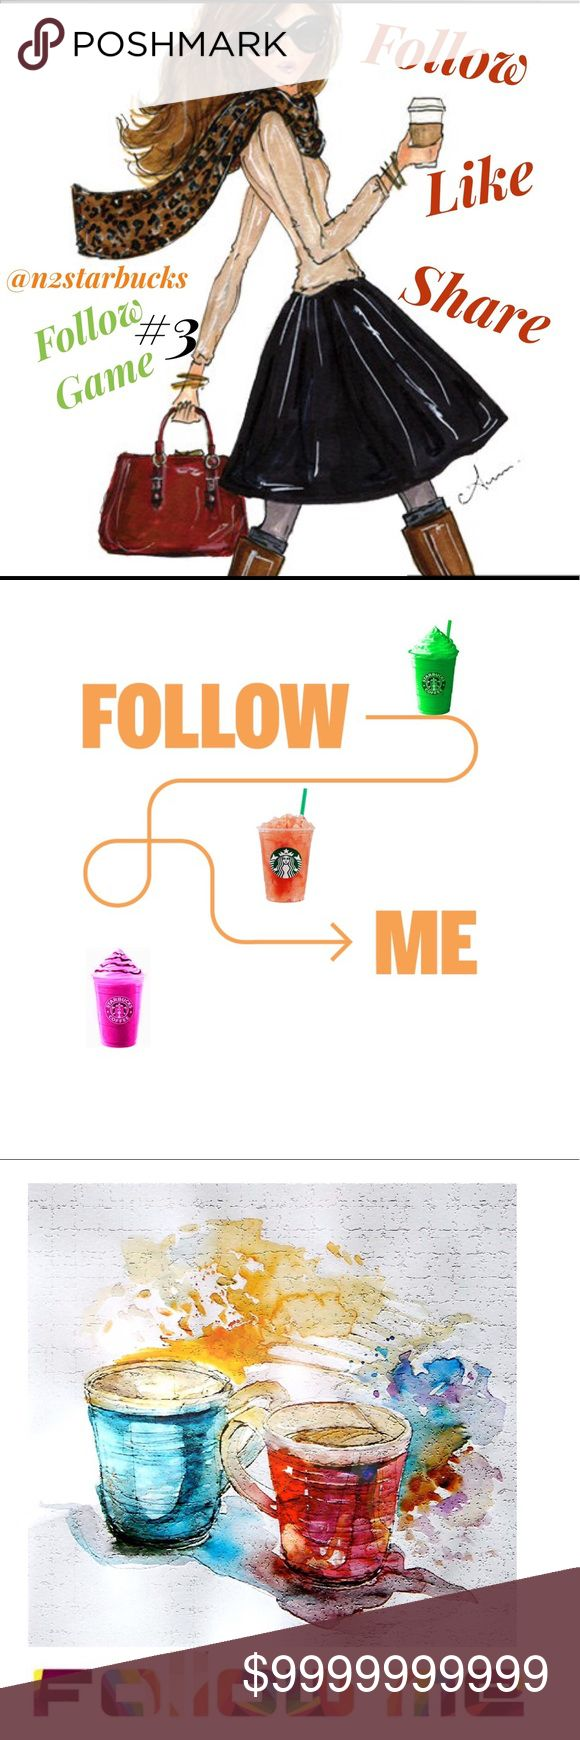 #3 FG! On the way to 50k!! 💚☕️🌸Lets Help Each Other🌸☕️💚  ☕️Like This Listing  ☕️Follow Me(I will follow you)   ☕️Follow everyone that likes this listing  ☕️Tag Some Friends  ☕️Share this listing  ☕️Don't forget to check back often for more Followers           🛍Happy Poshing🛍 Other